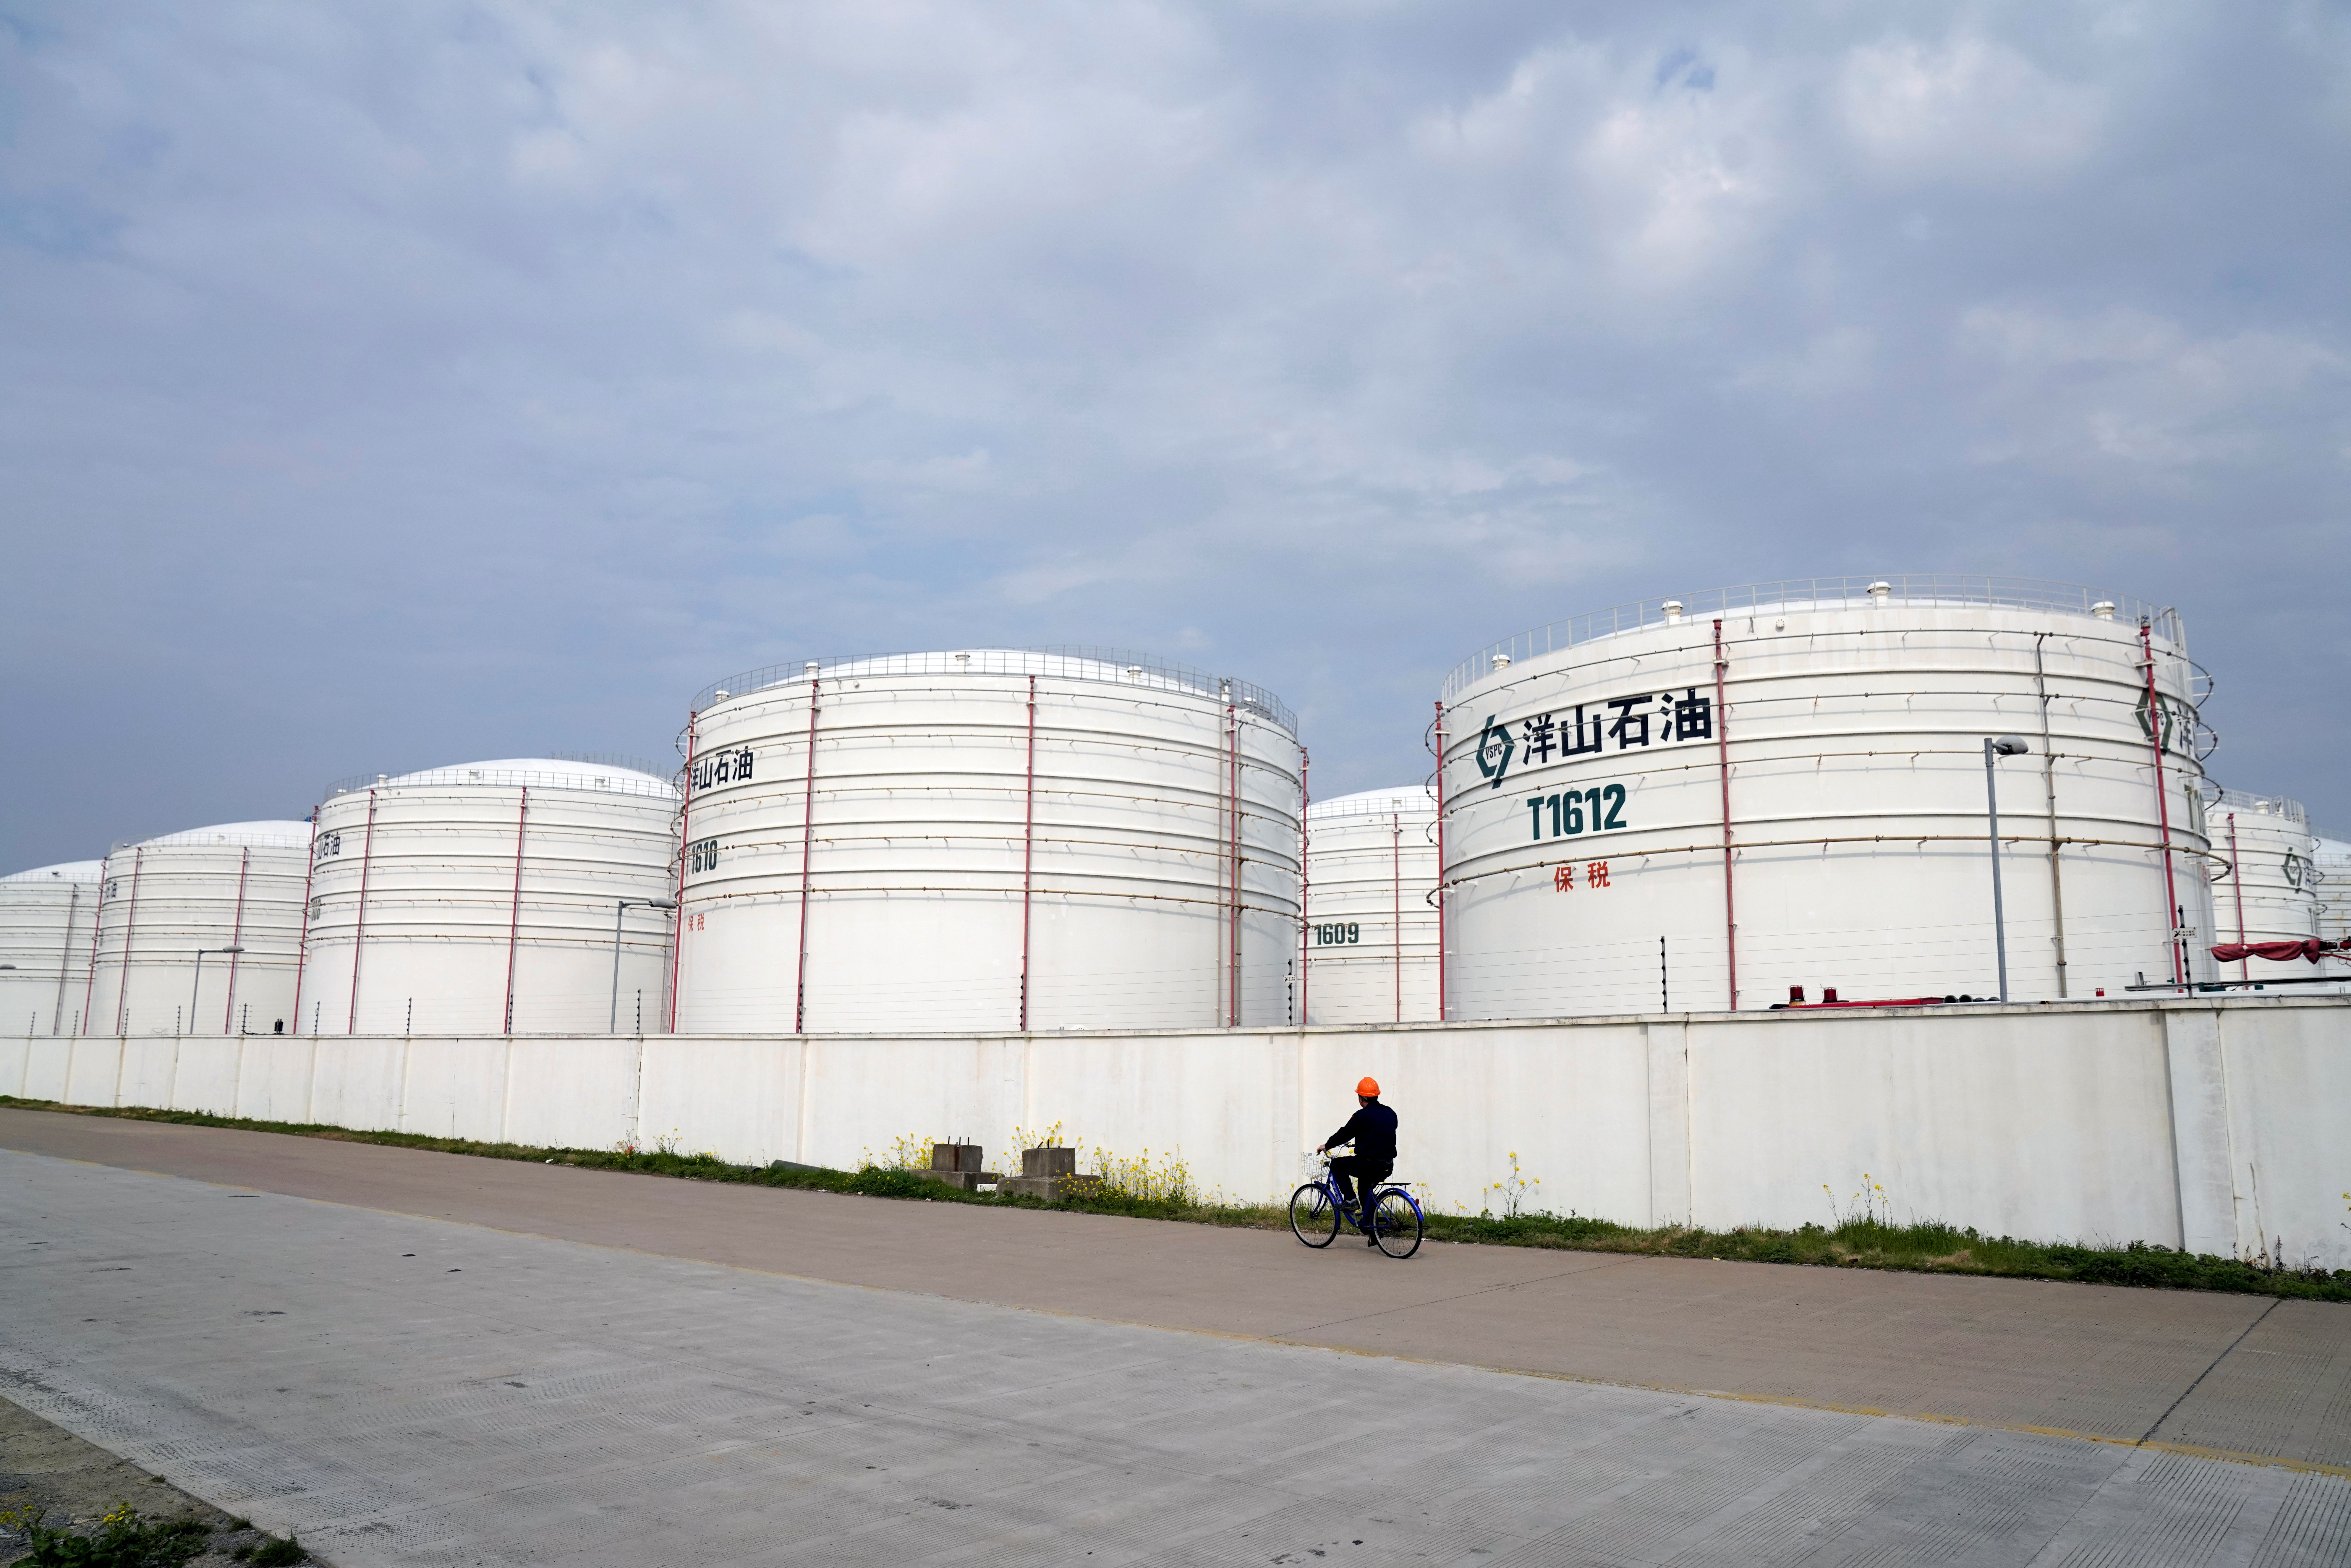 Oil tanks are seen at an oil warehouse at Yangshan port in Shanghai, China March 14, 2018. REUTERS/Aly Song/File Photo